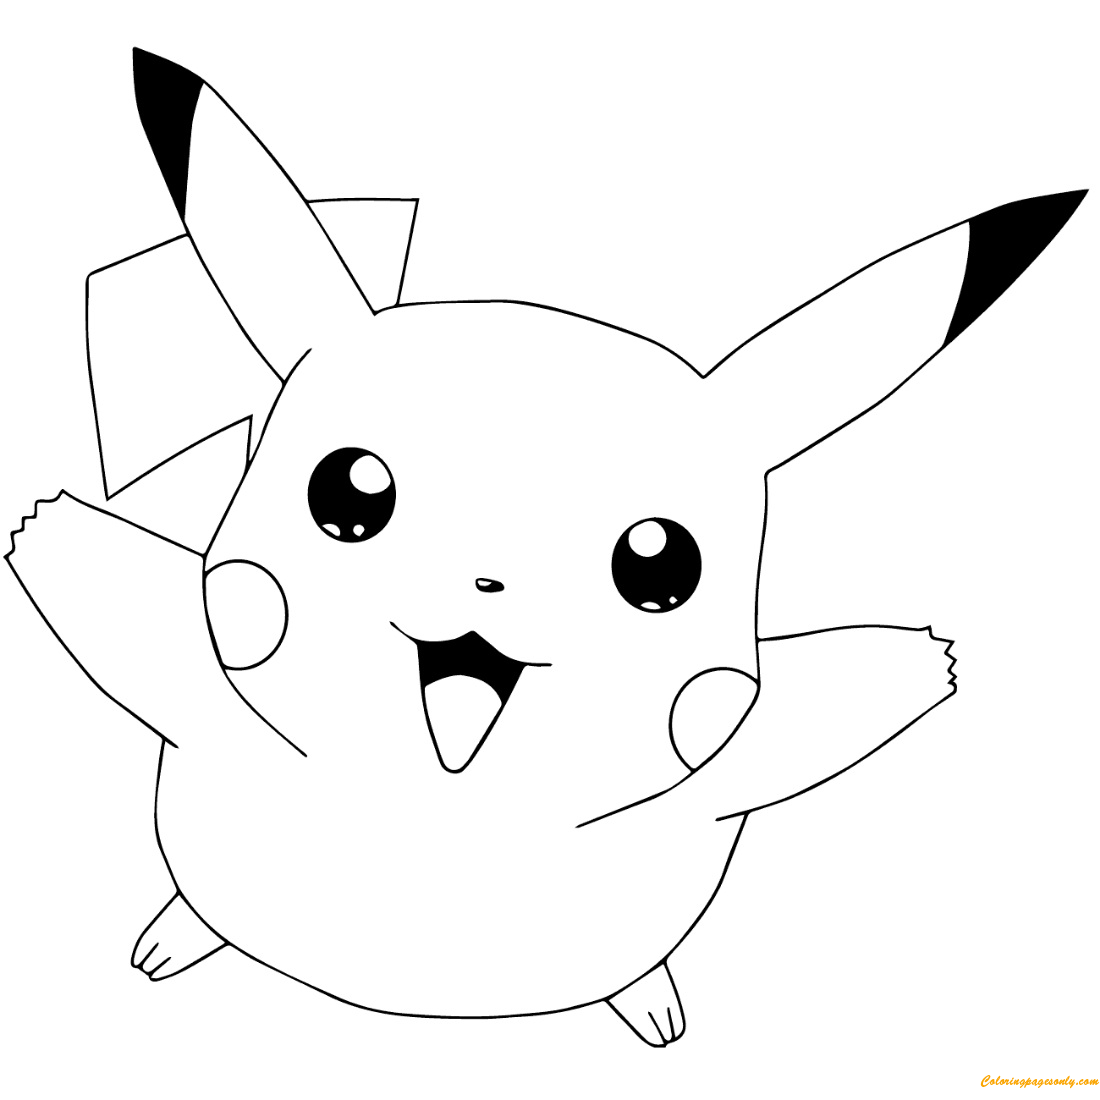 Pokémon GO Pikachu Flying Coloring Pages - Cartoons ...